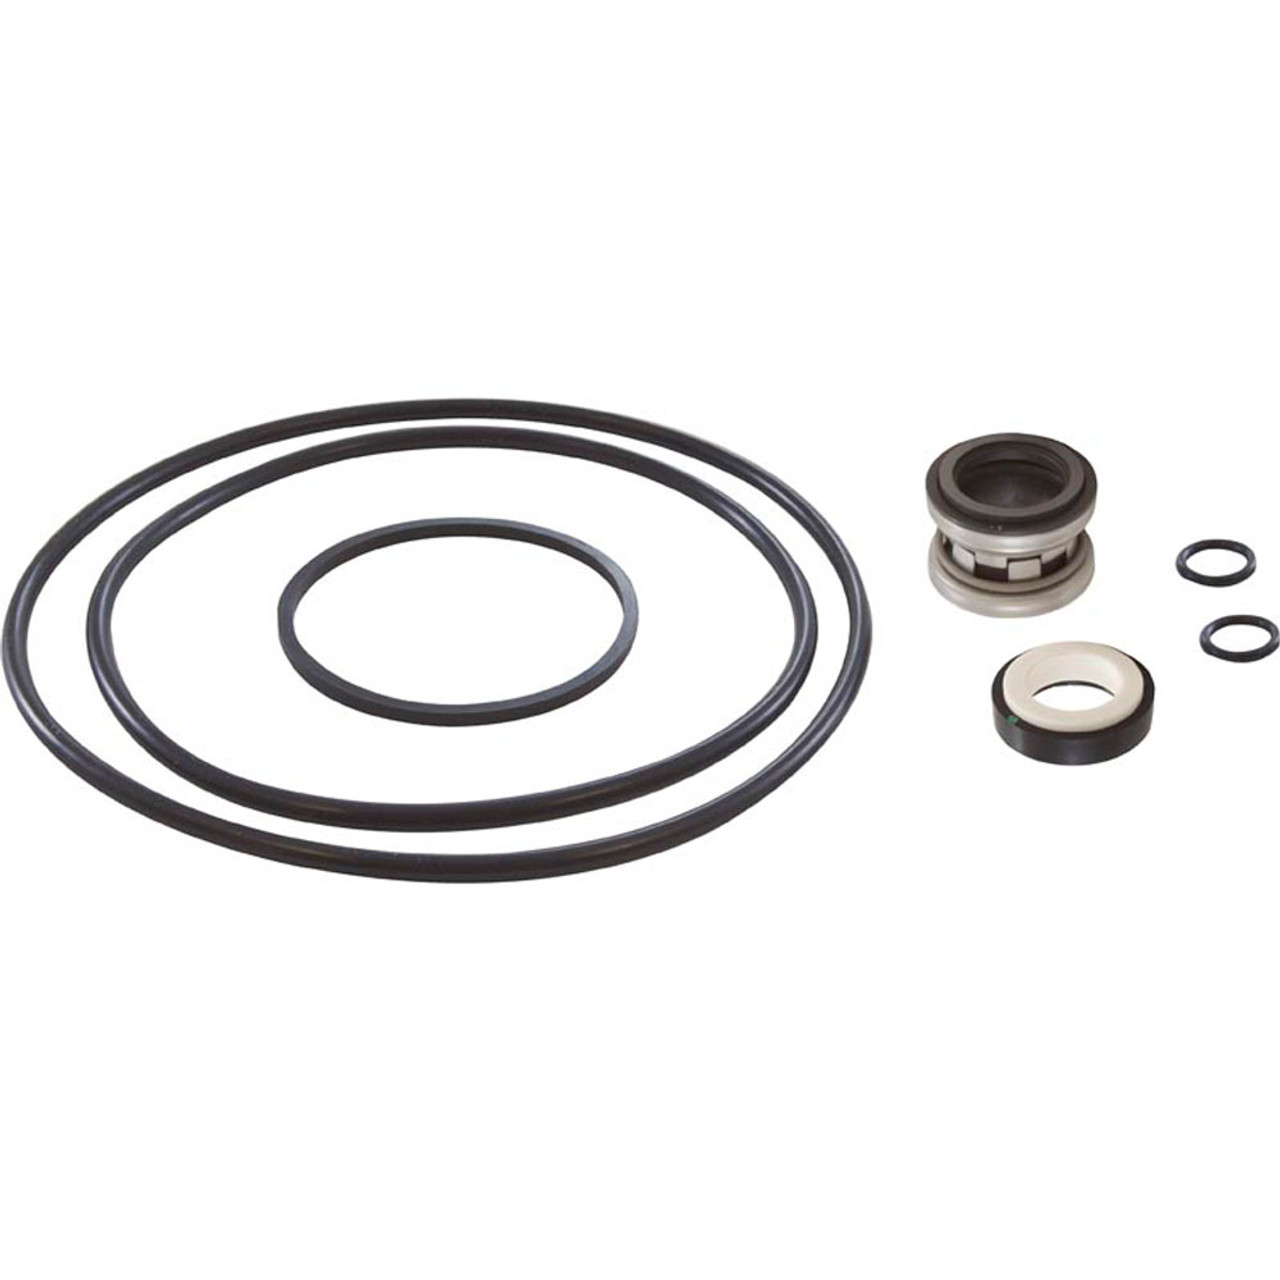 Jacuzzi Pool Pump Seal Kit Pump Rebuild Kit Jacuzzi Magnum With Viton Shaft Seal